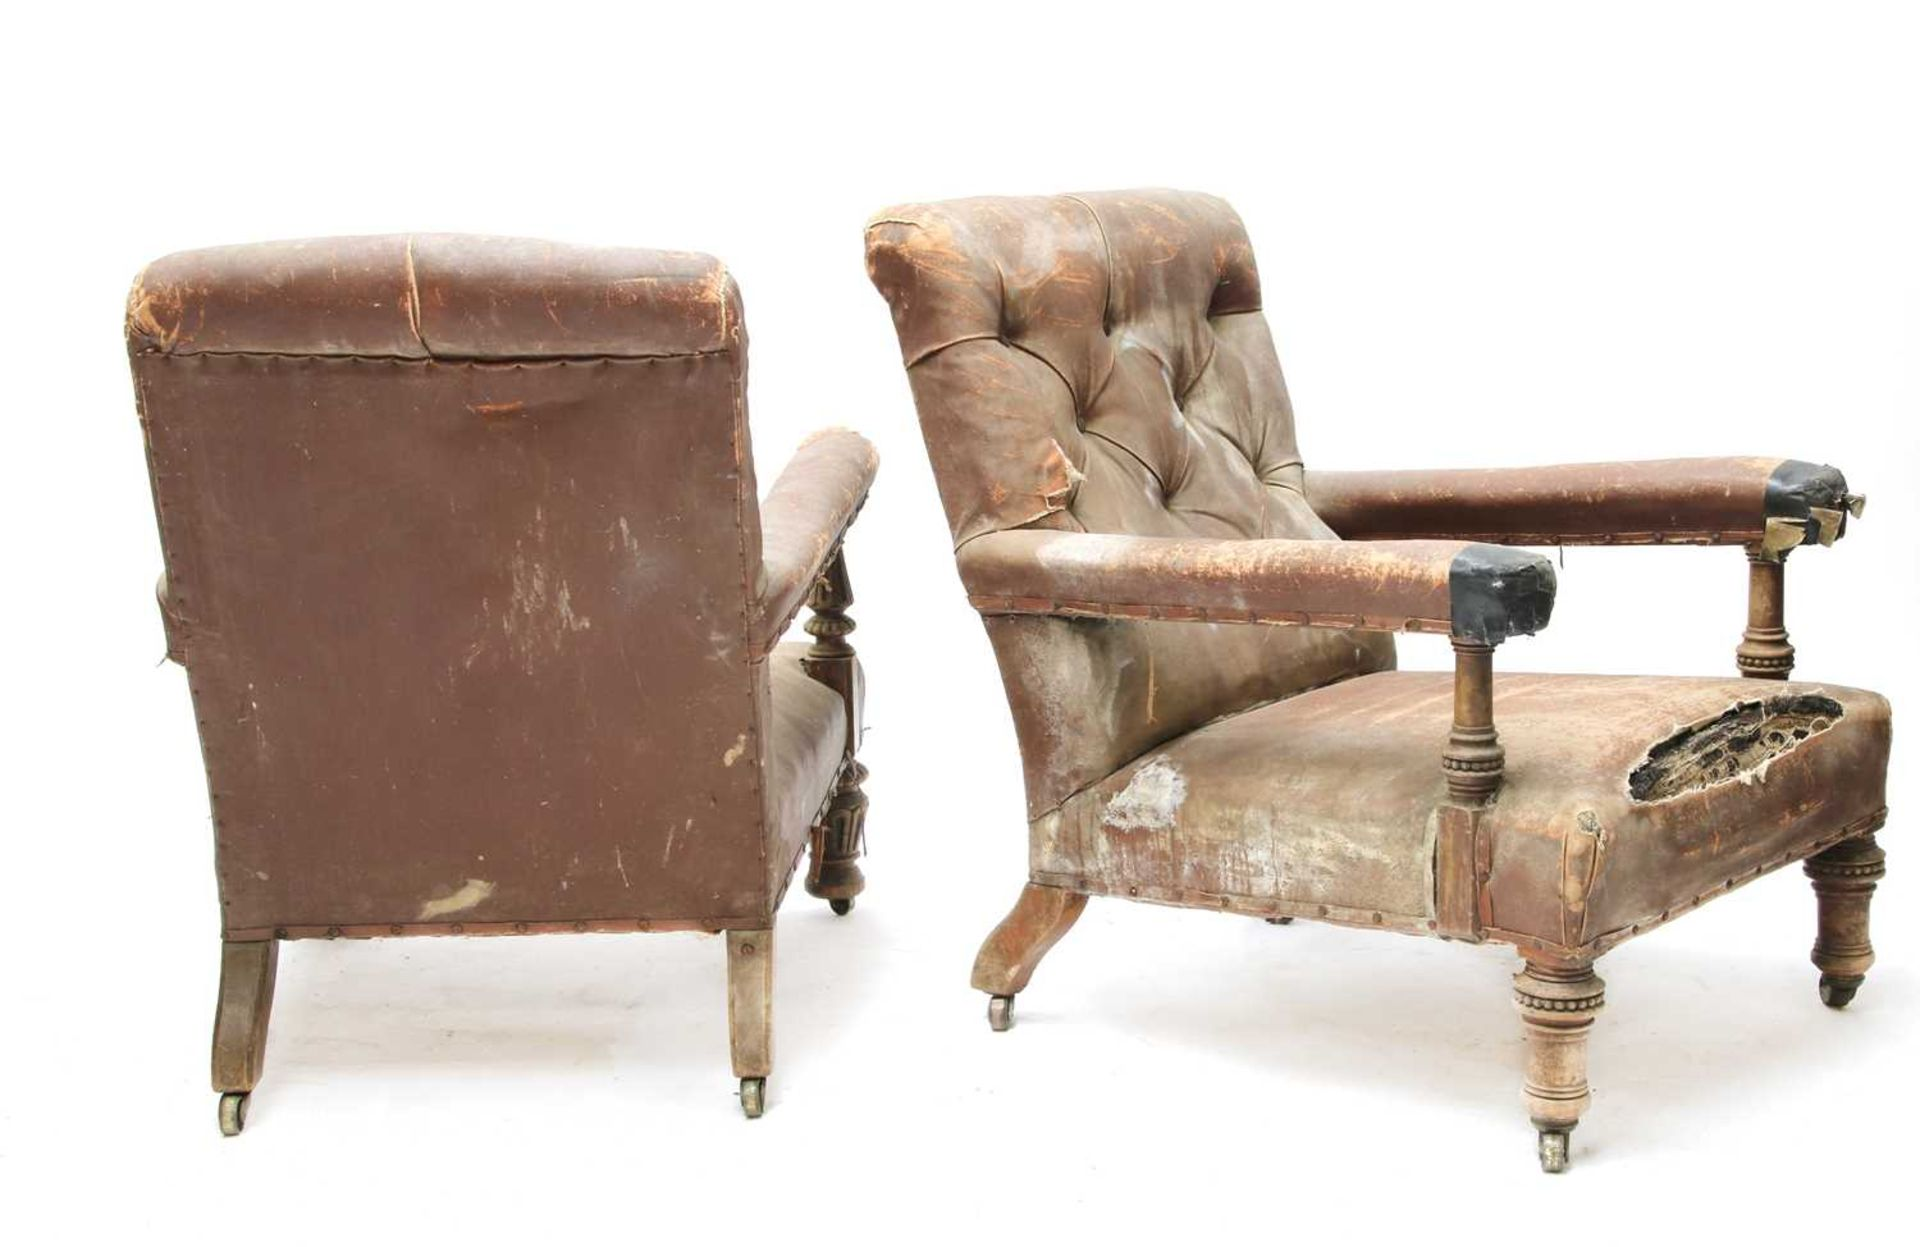 Two similar library armchairs by Gillow, - Image 3 of 7